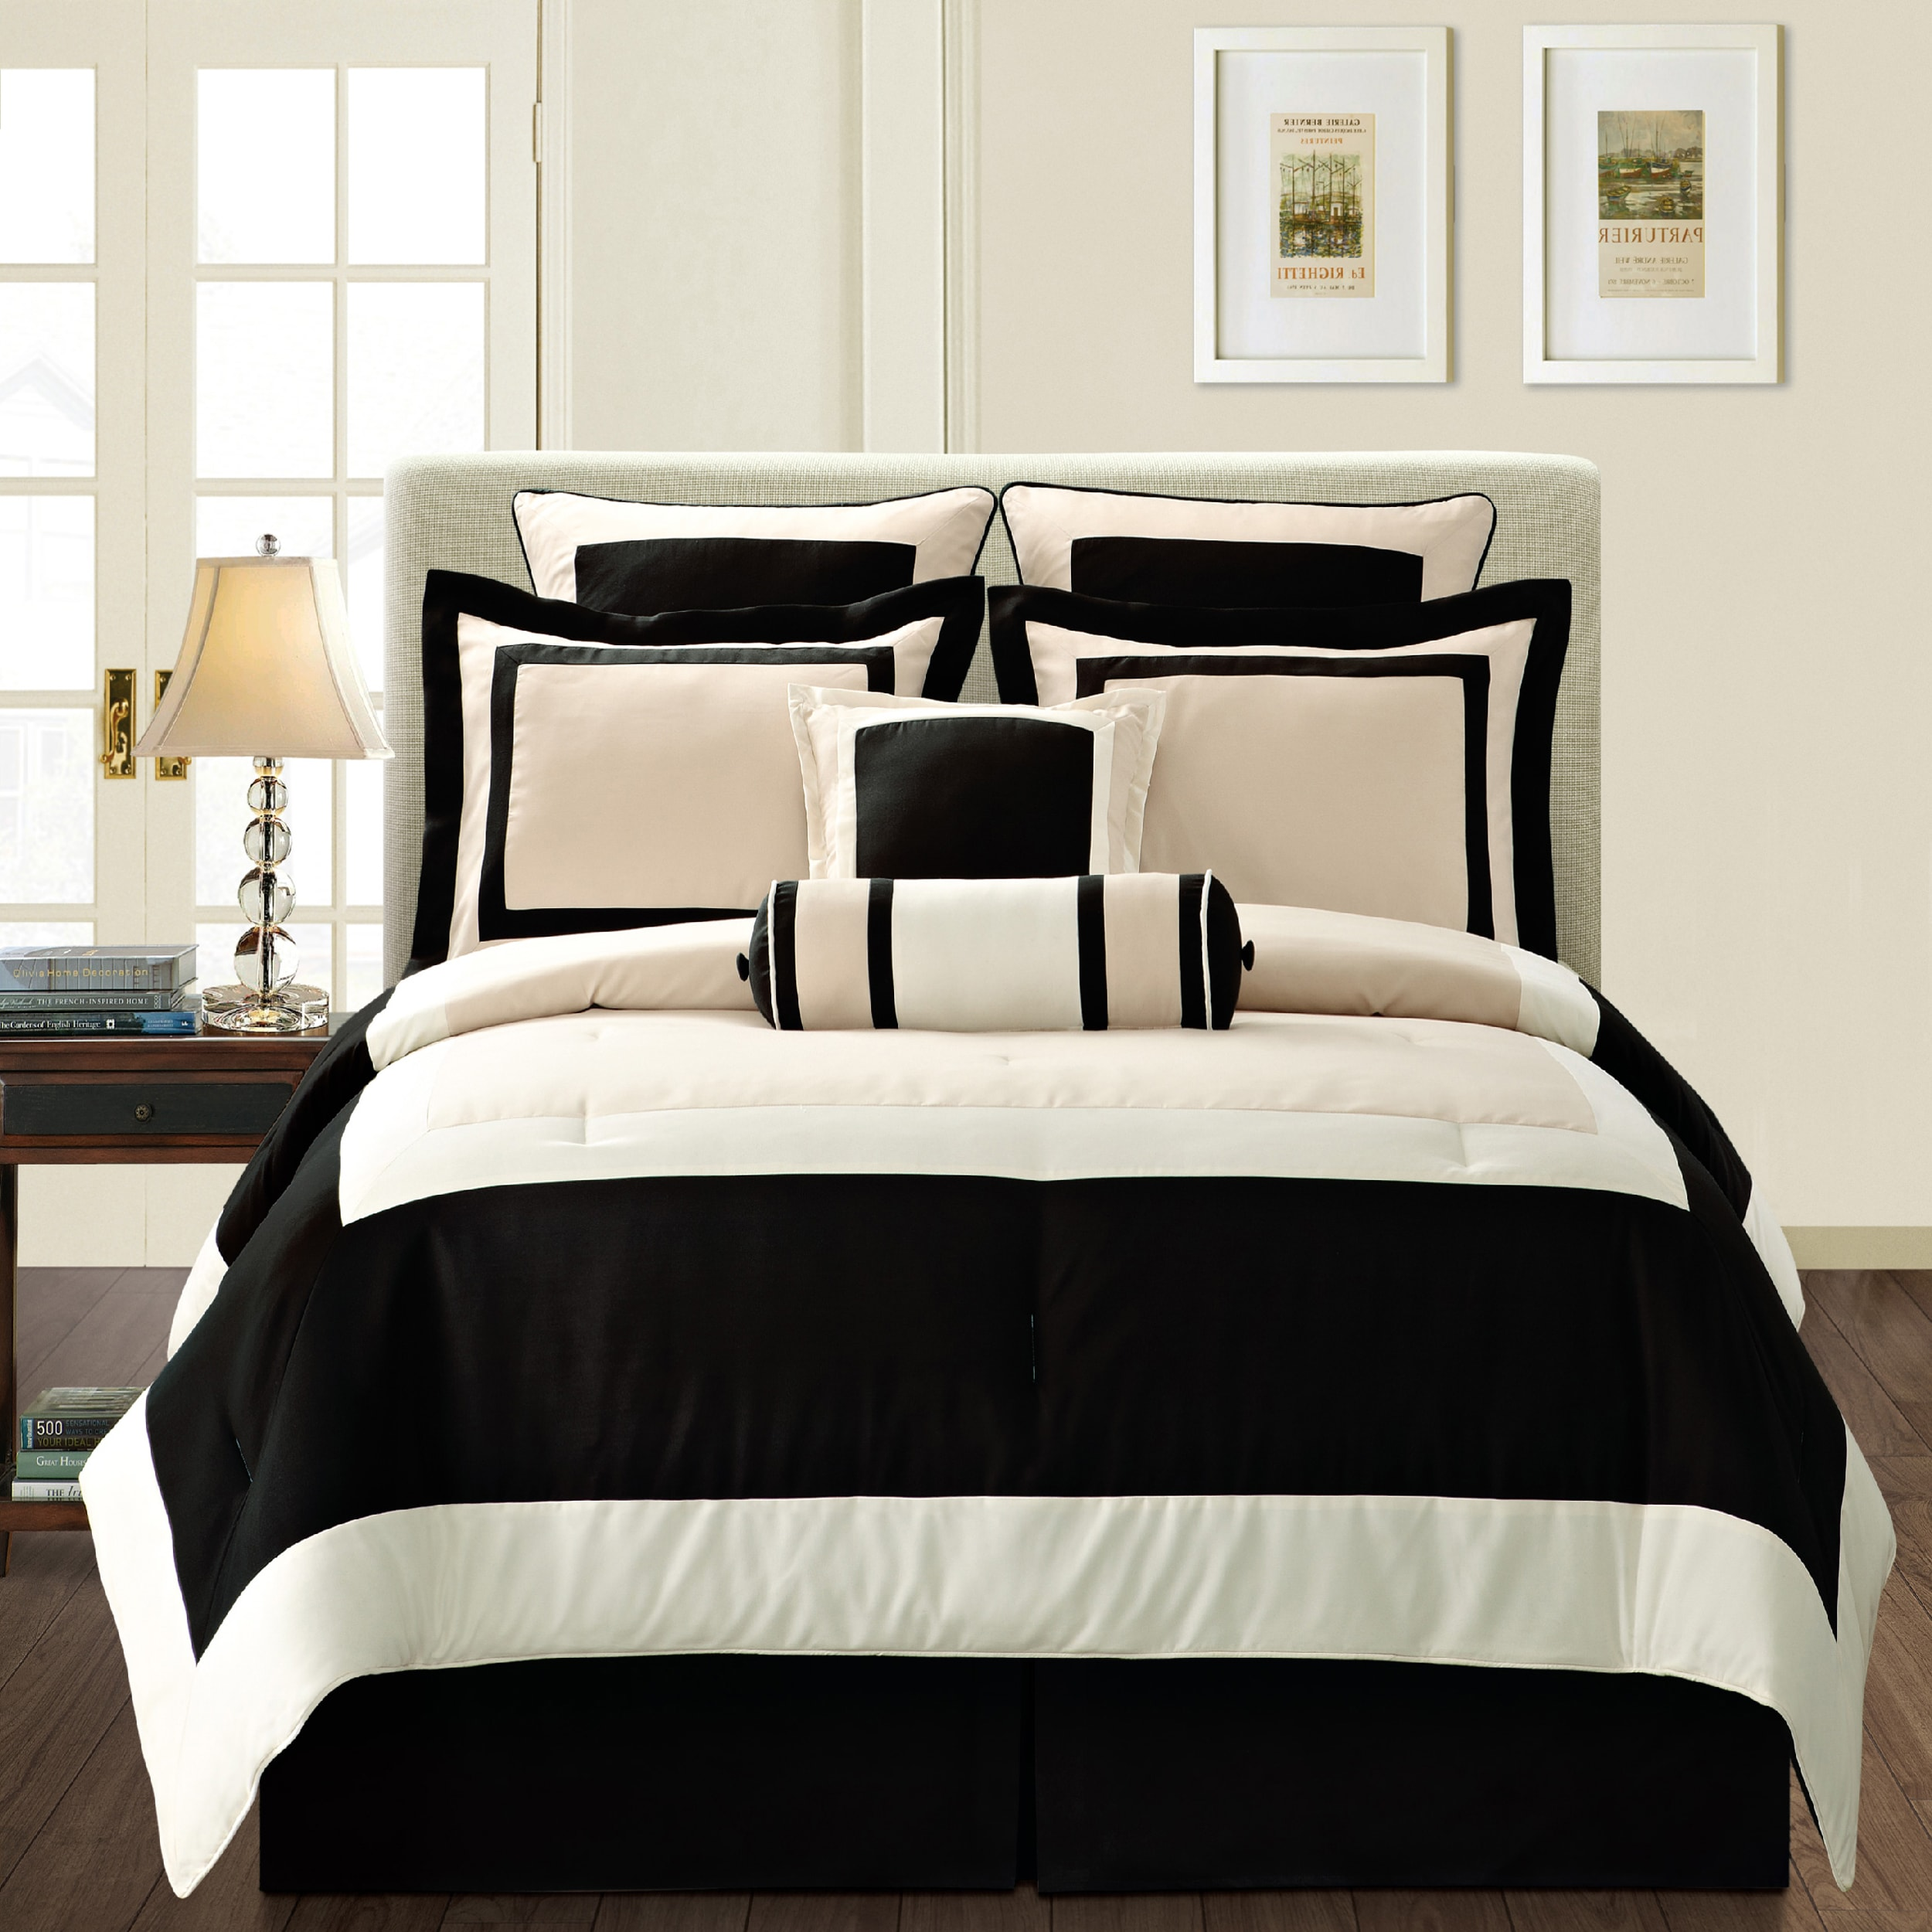 Gramercy Queen Size 12 Piece Black Bed In A Bag With Sheet